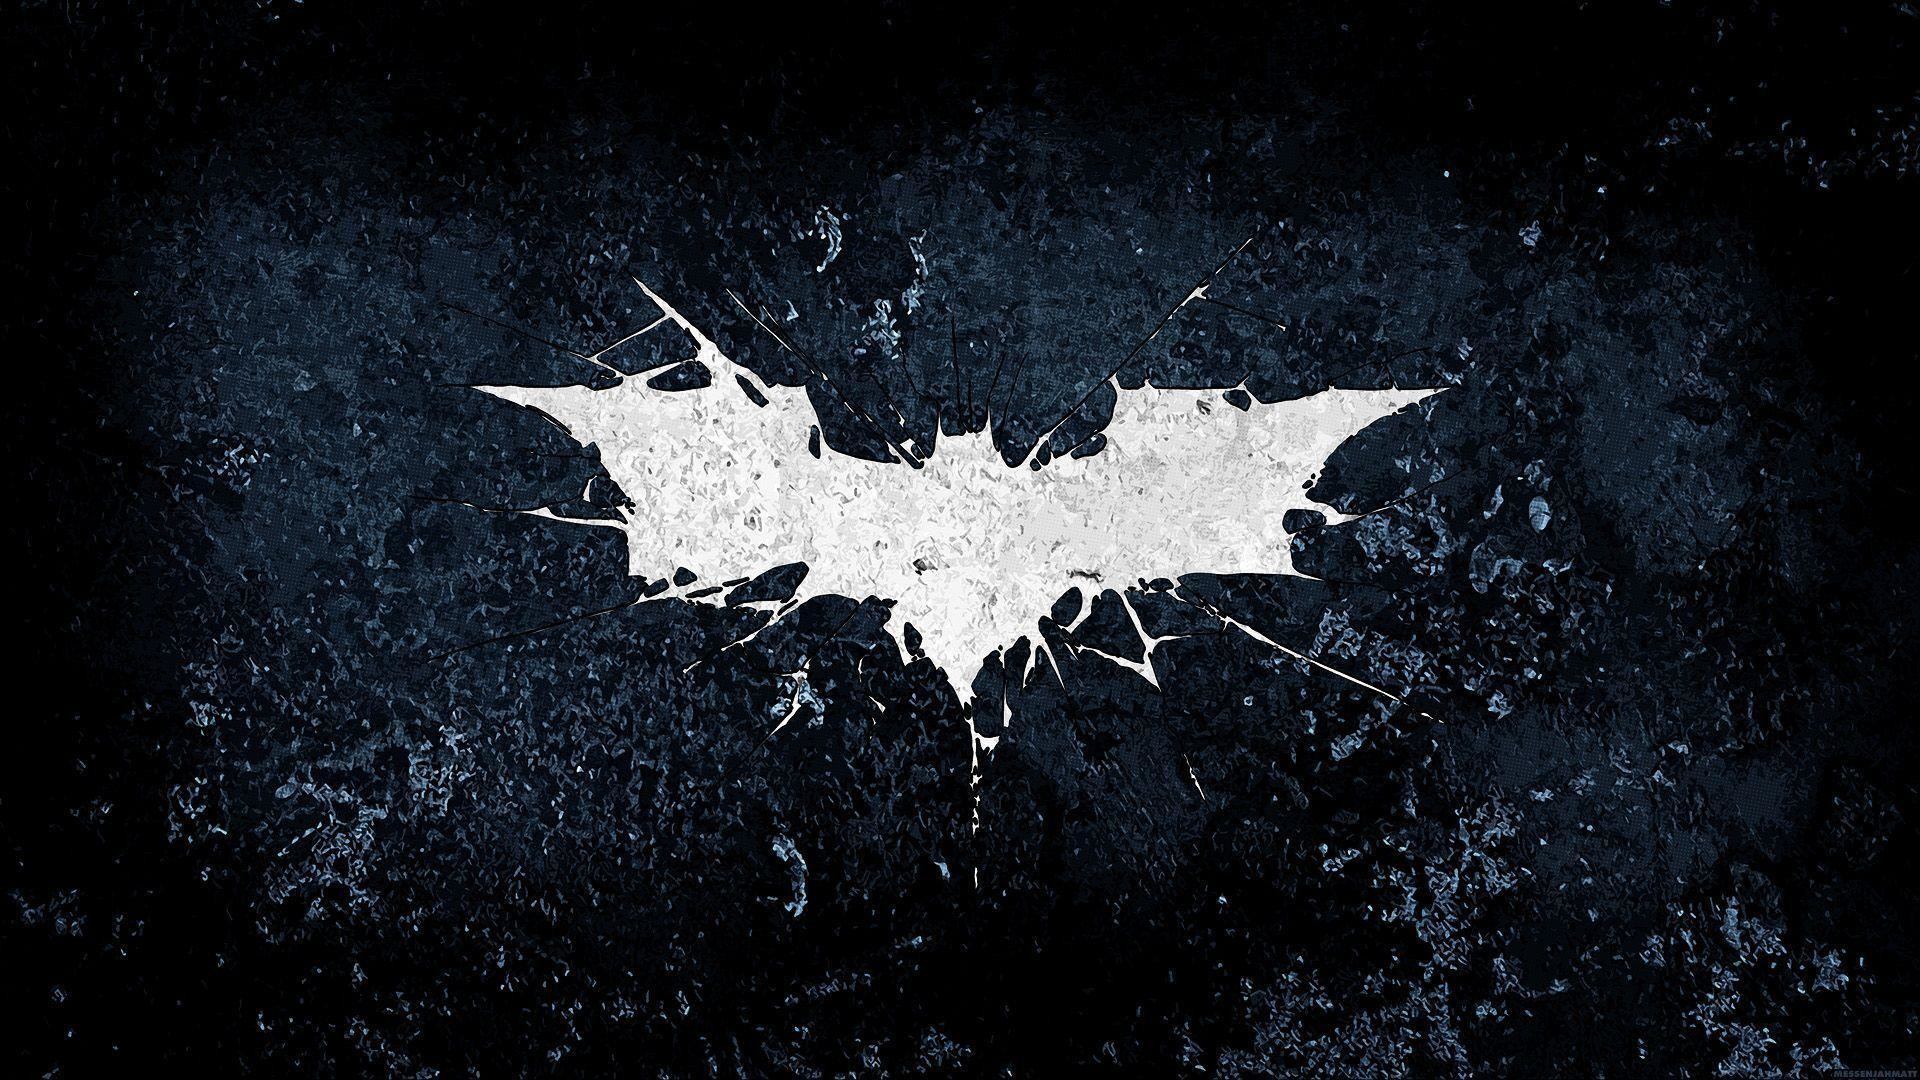 Res: 1920x1080, Wallpapers For > Batman The Dark Knight Rises Hd Wallpapers 1080p